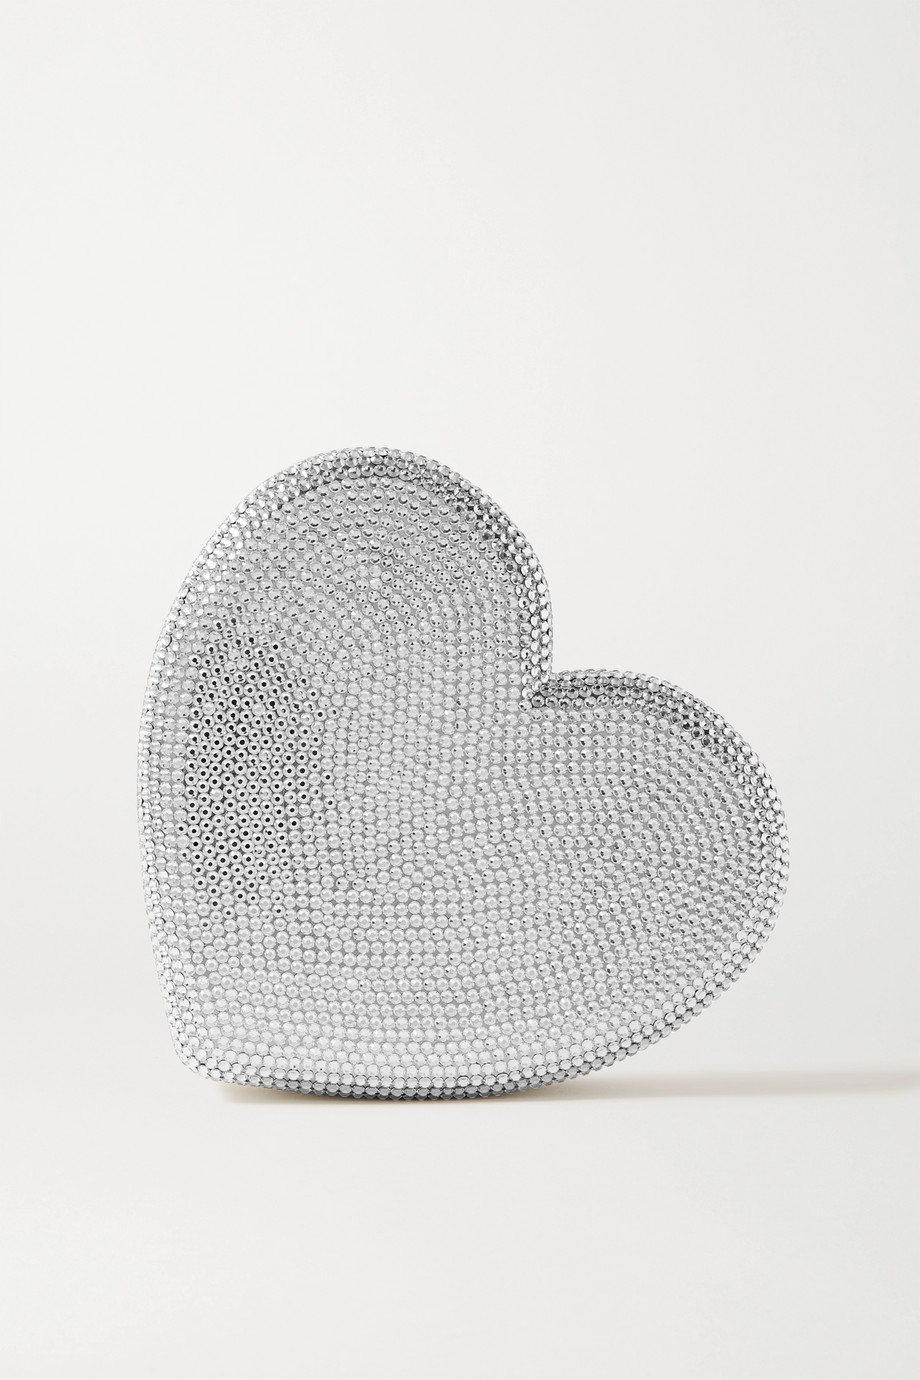 Judith Leiber Couture Heart crystal-embellished clutch